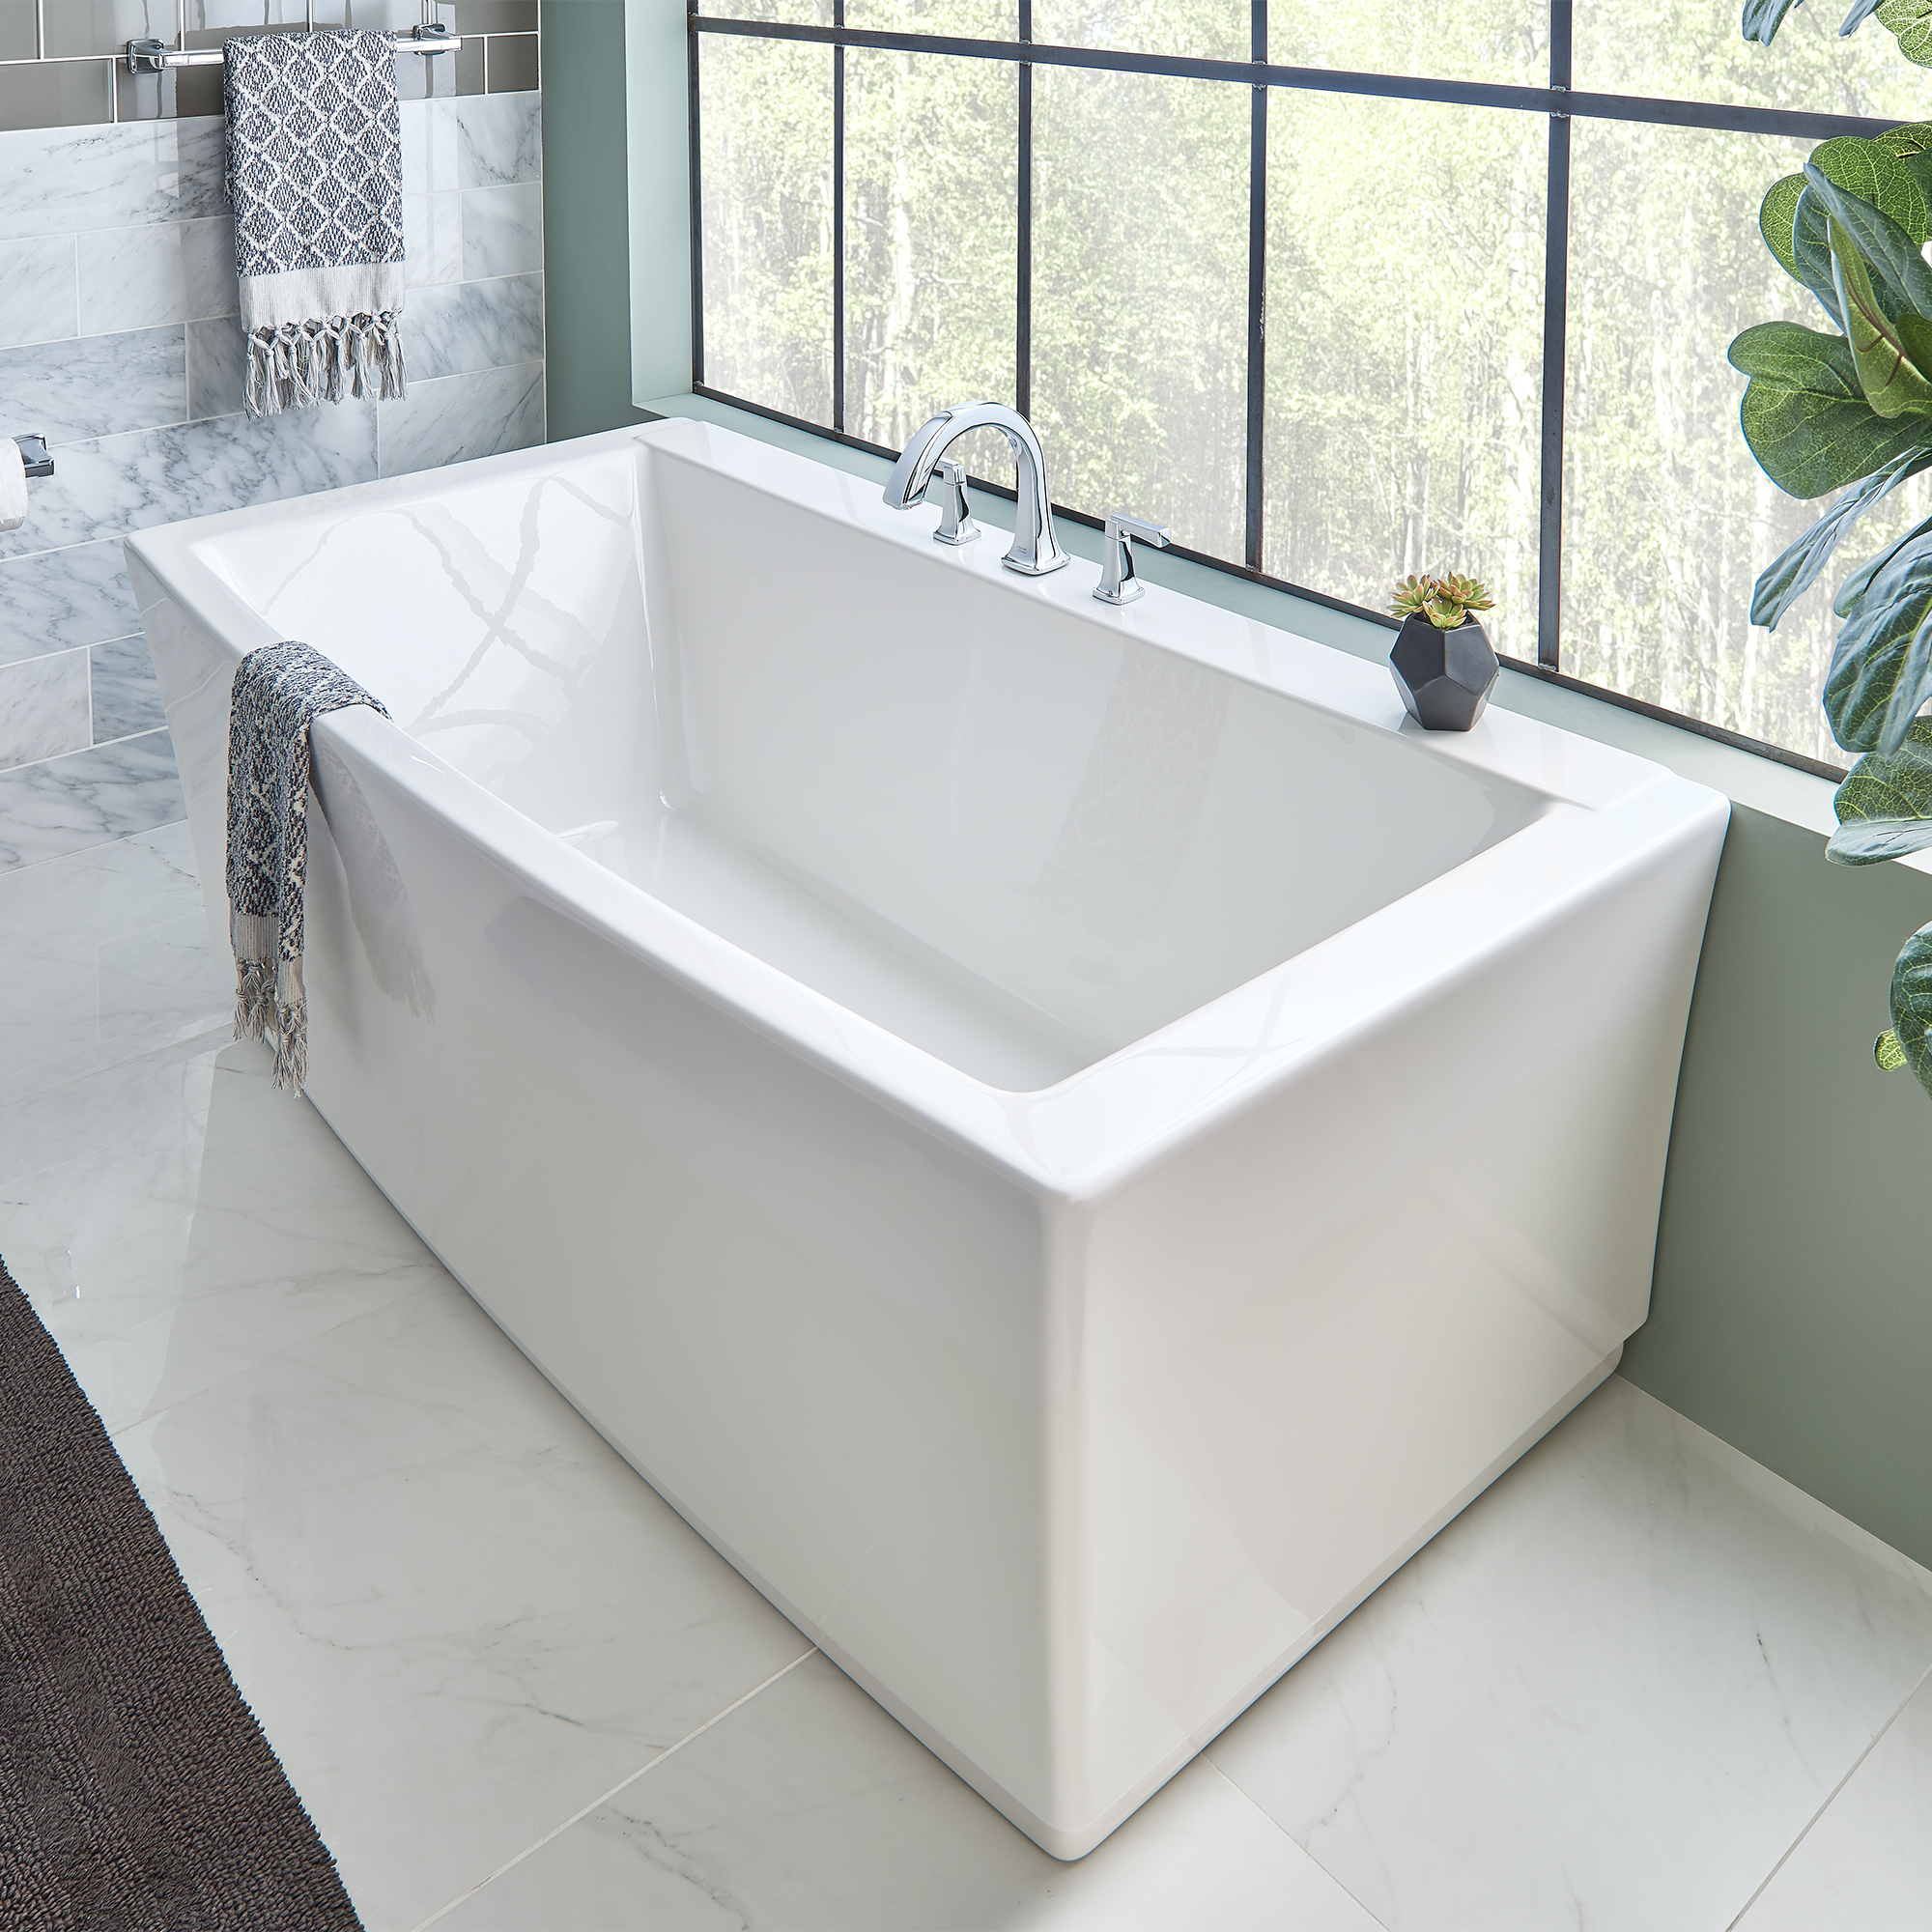 b-2691004020-townsend-freestanding-tub-2